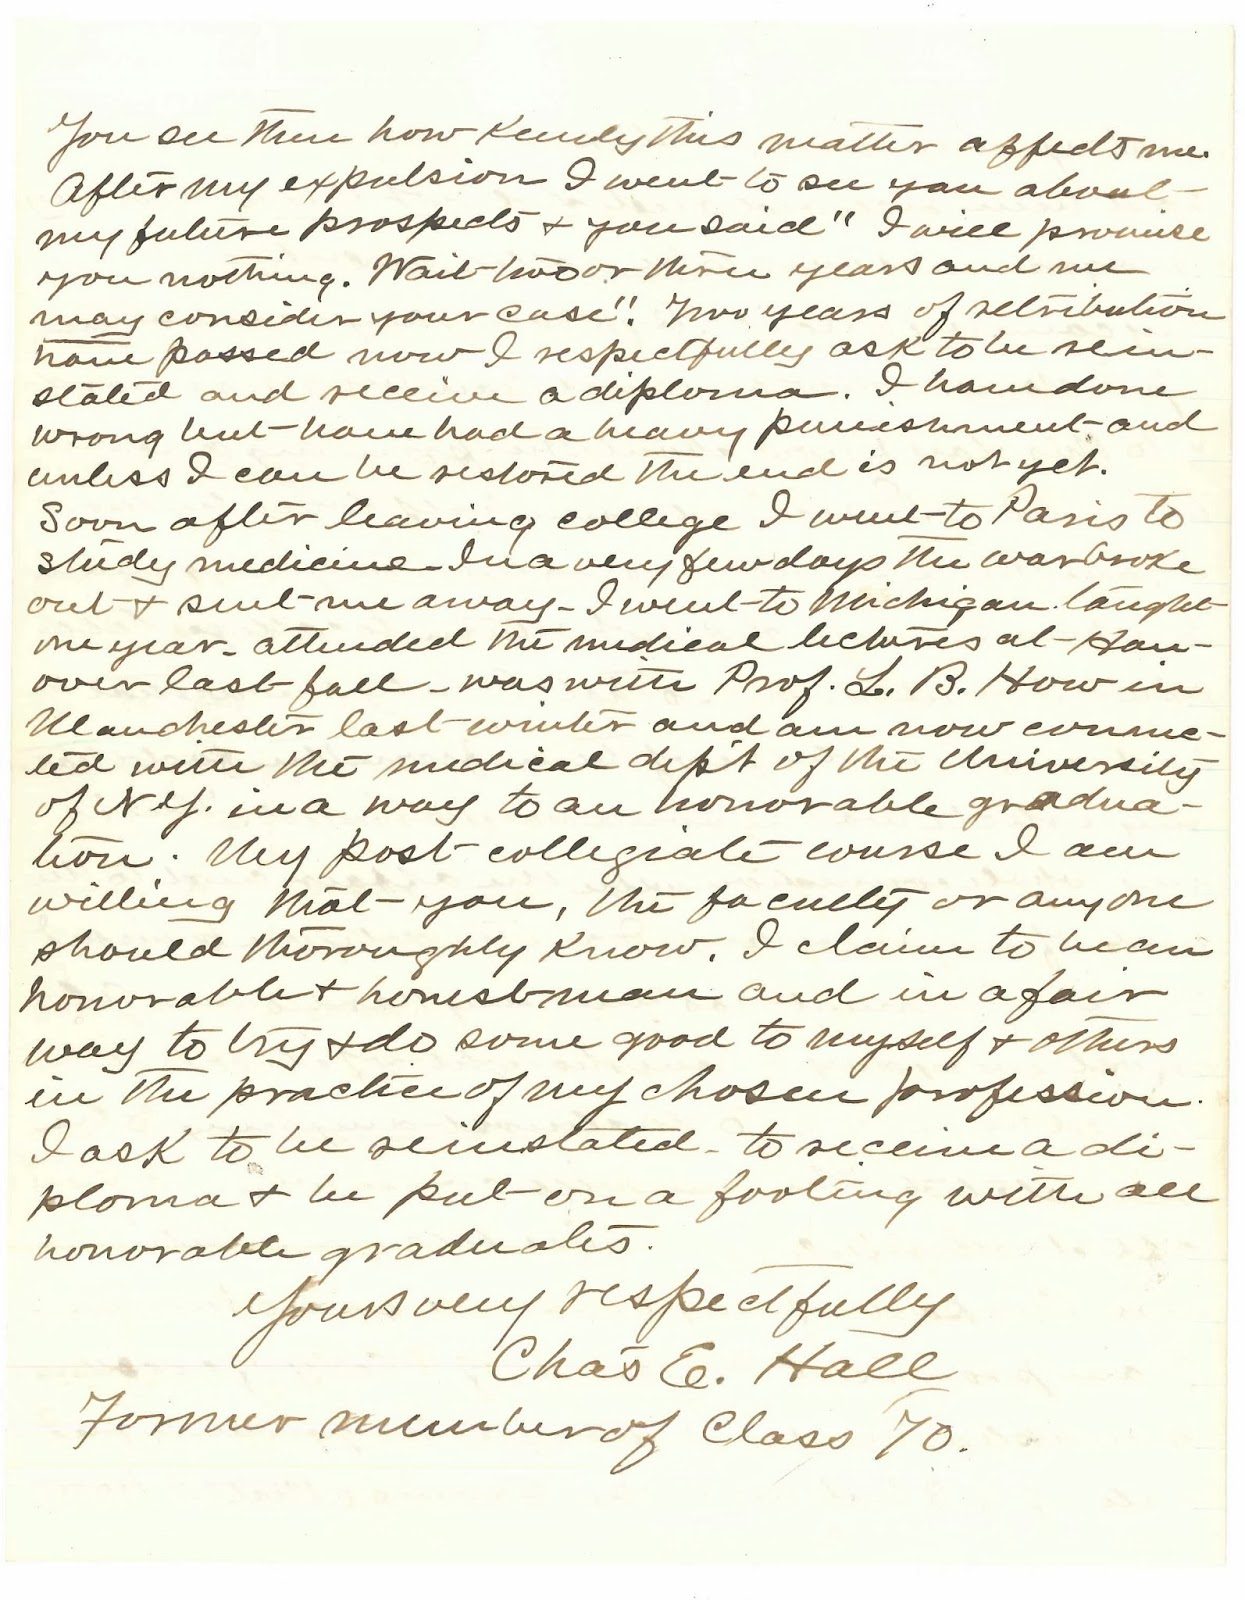 A page from a handwritten letter.